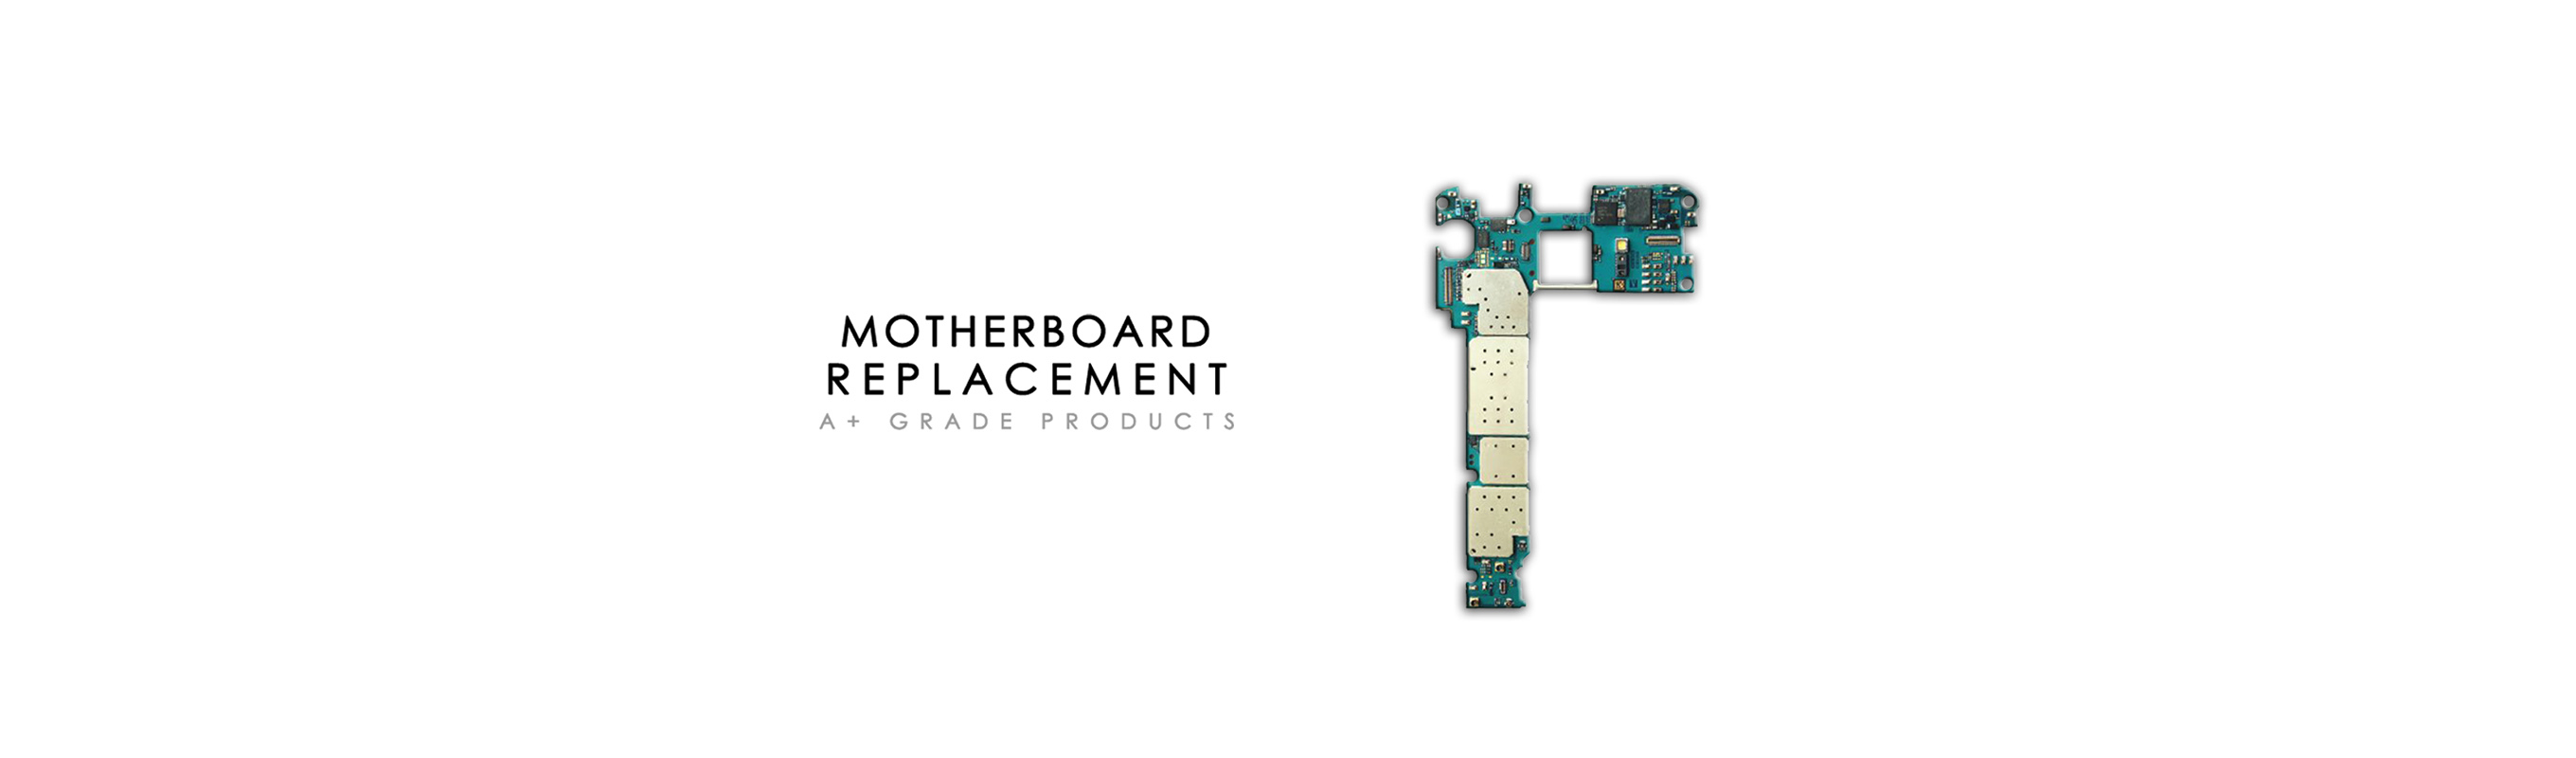 Motherboards for iPhone